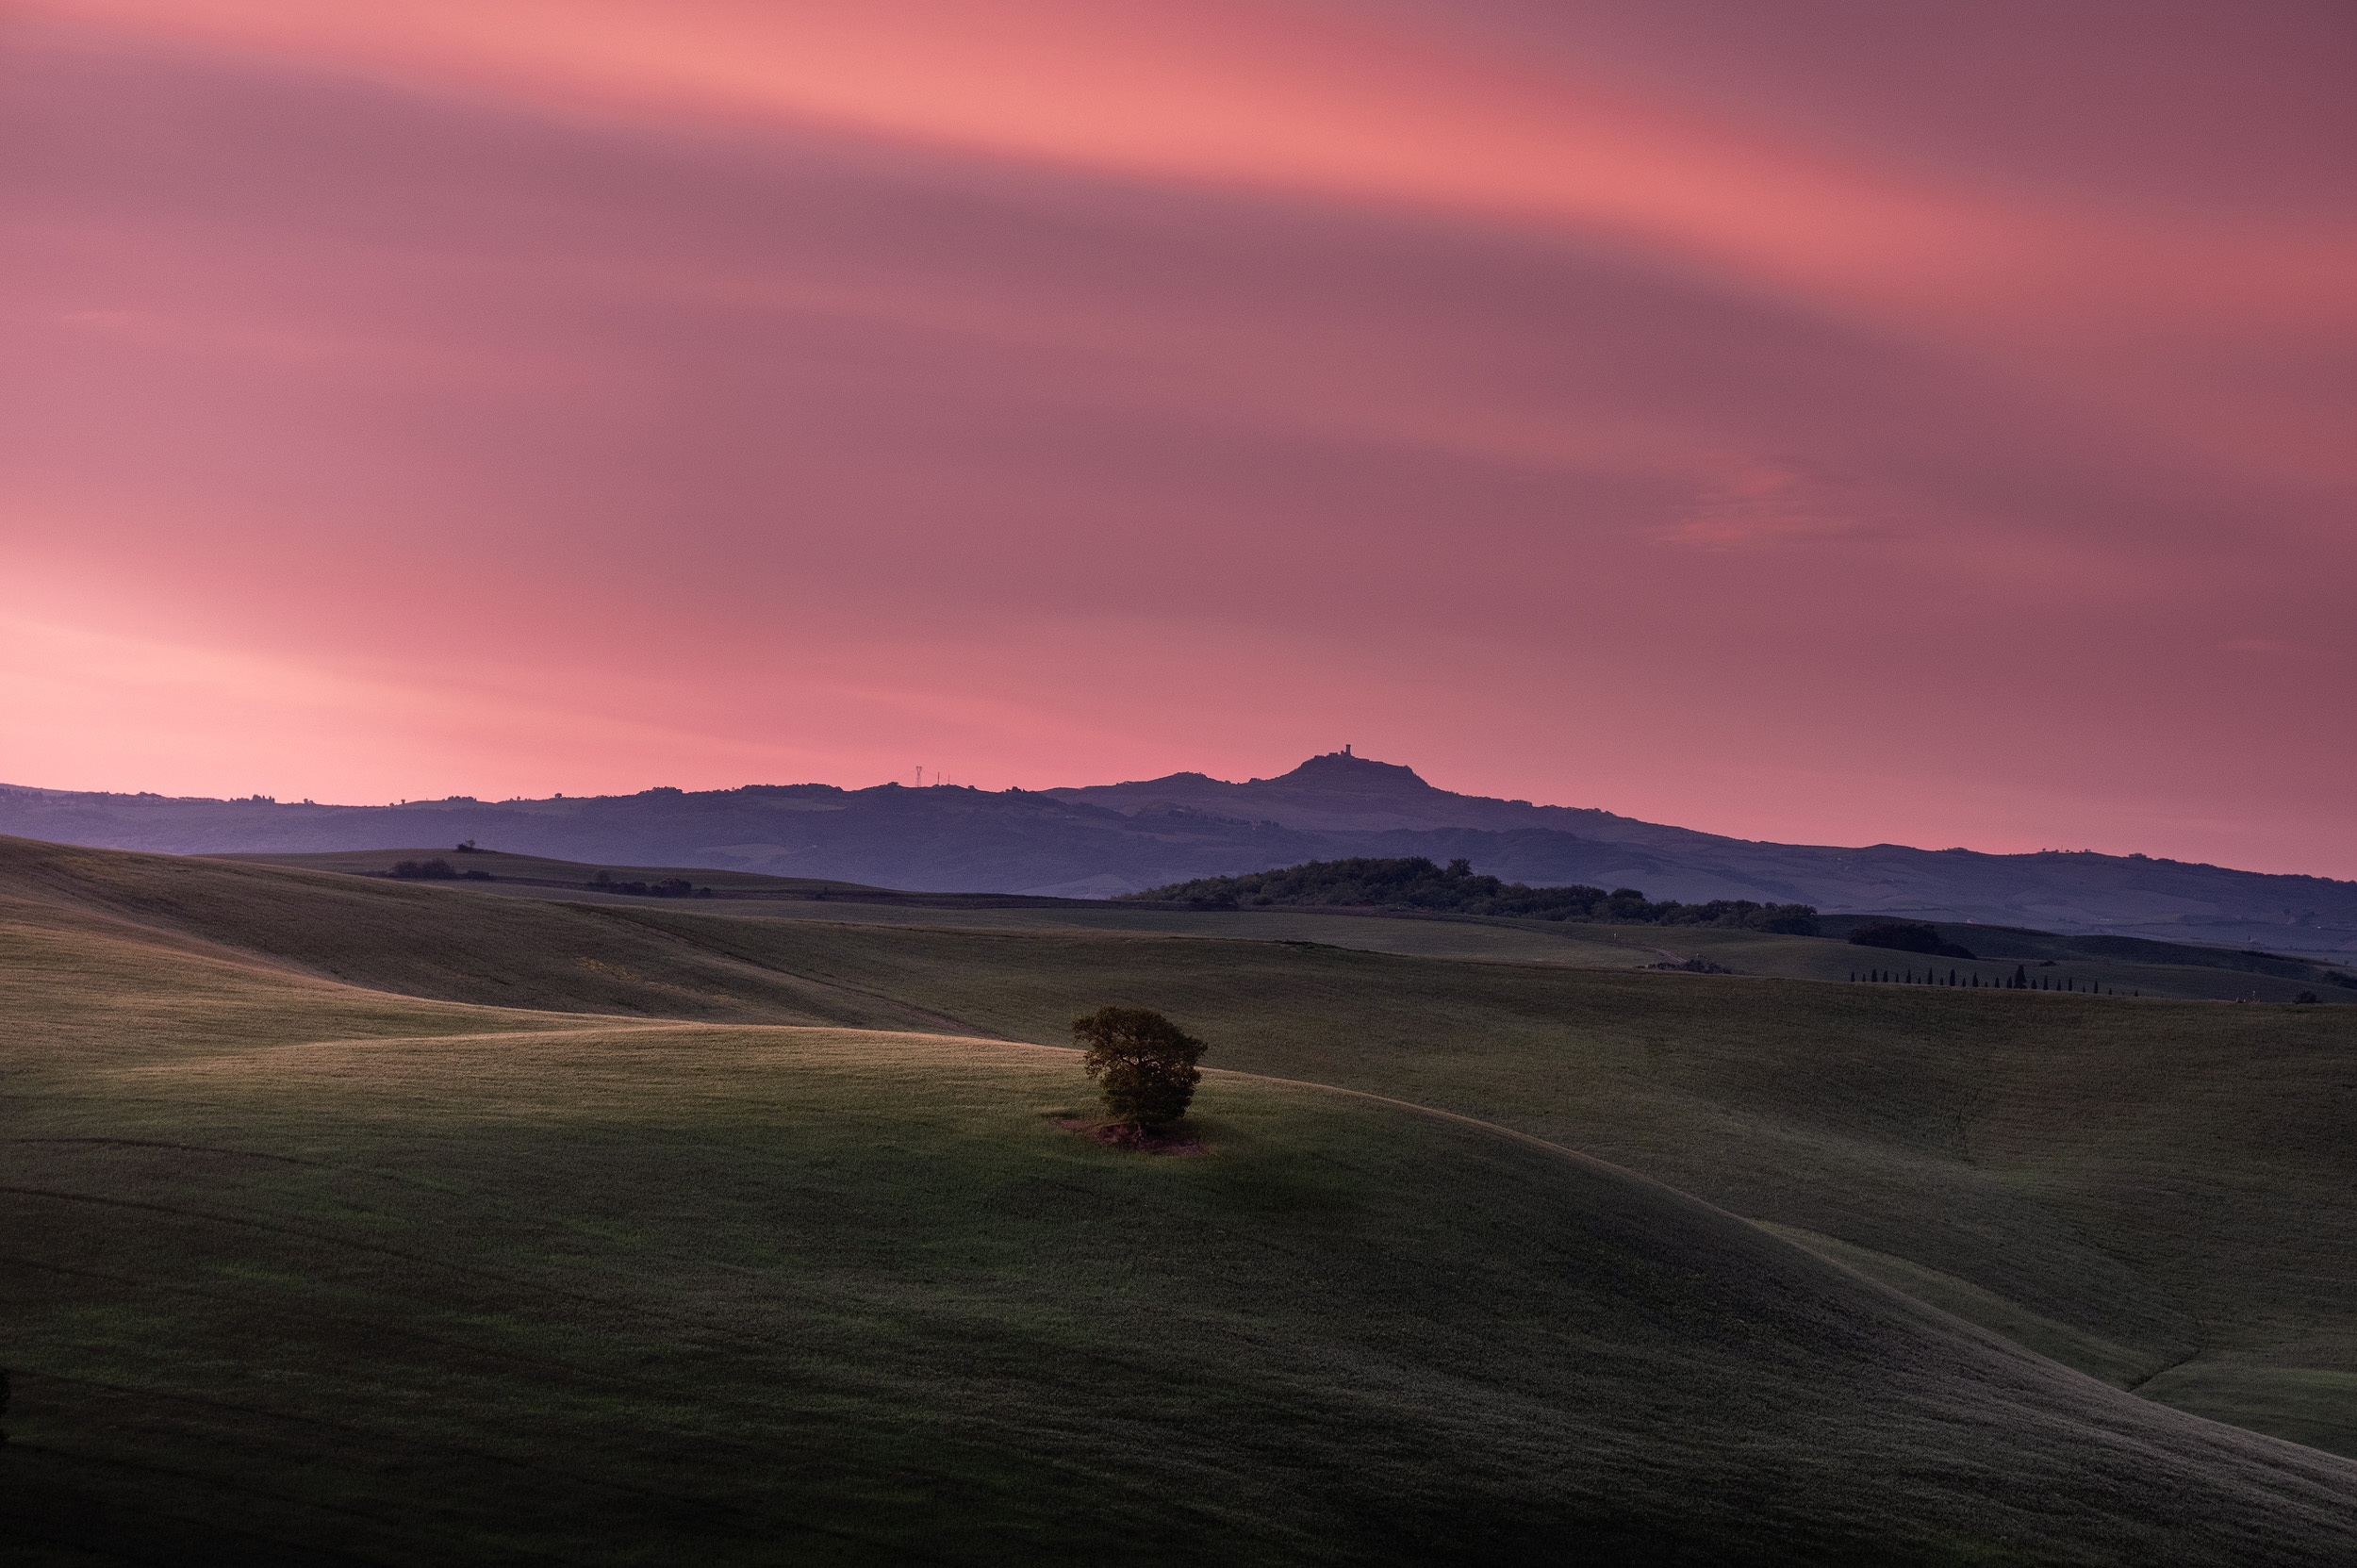 val d'orcia.jpg